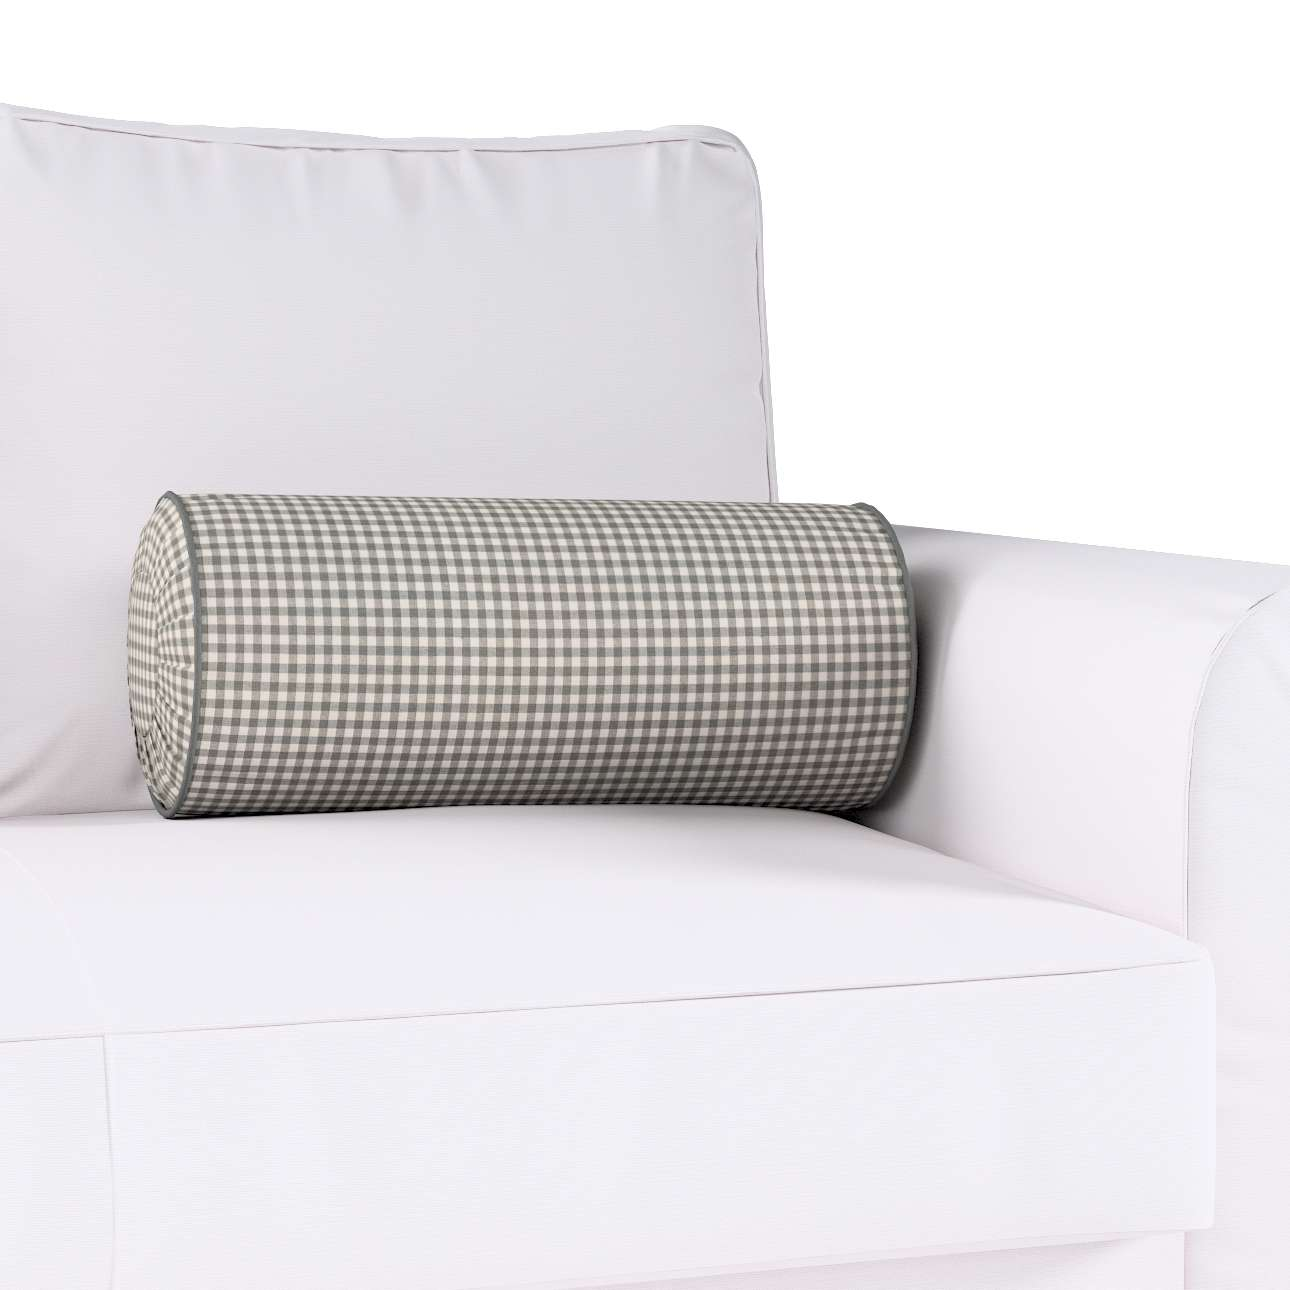 Bolster cushion with pleats in collection Quadro, fabric: 136-10